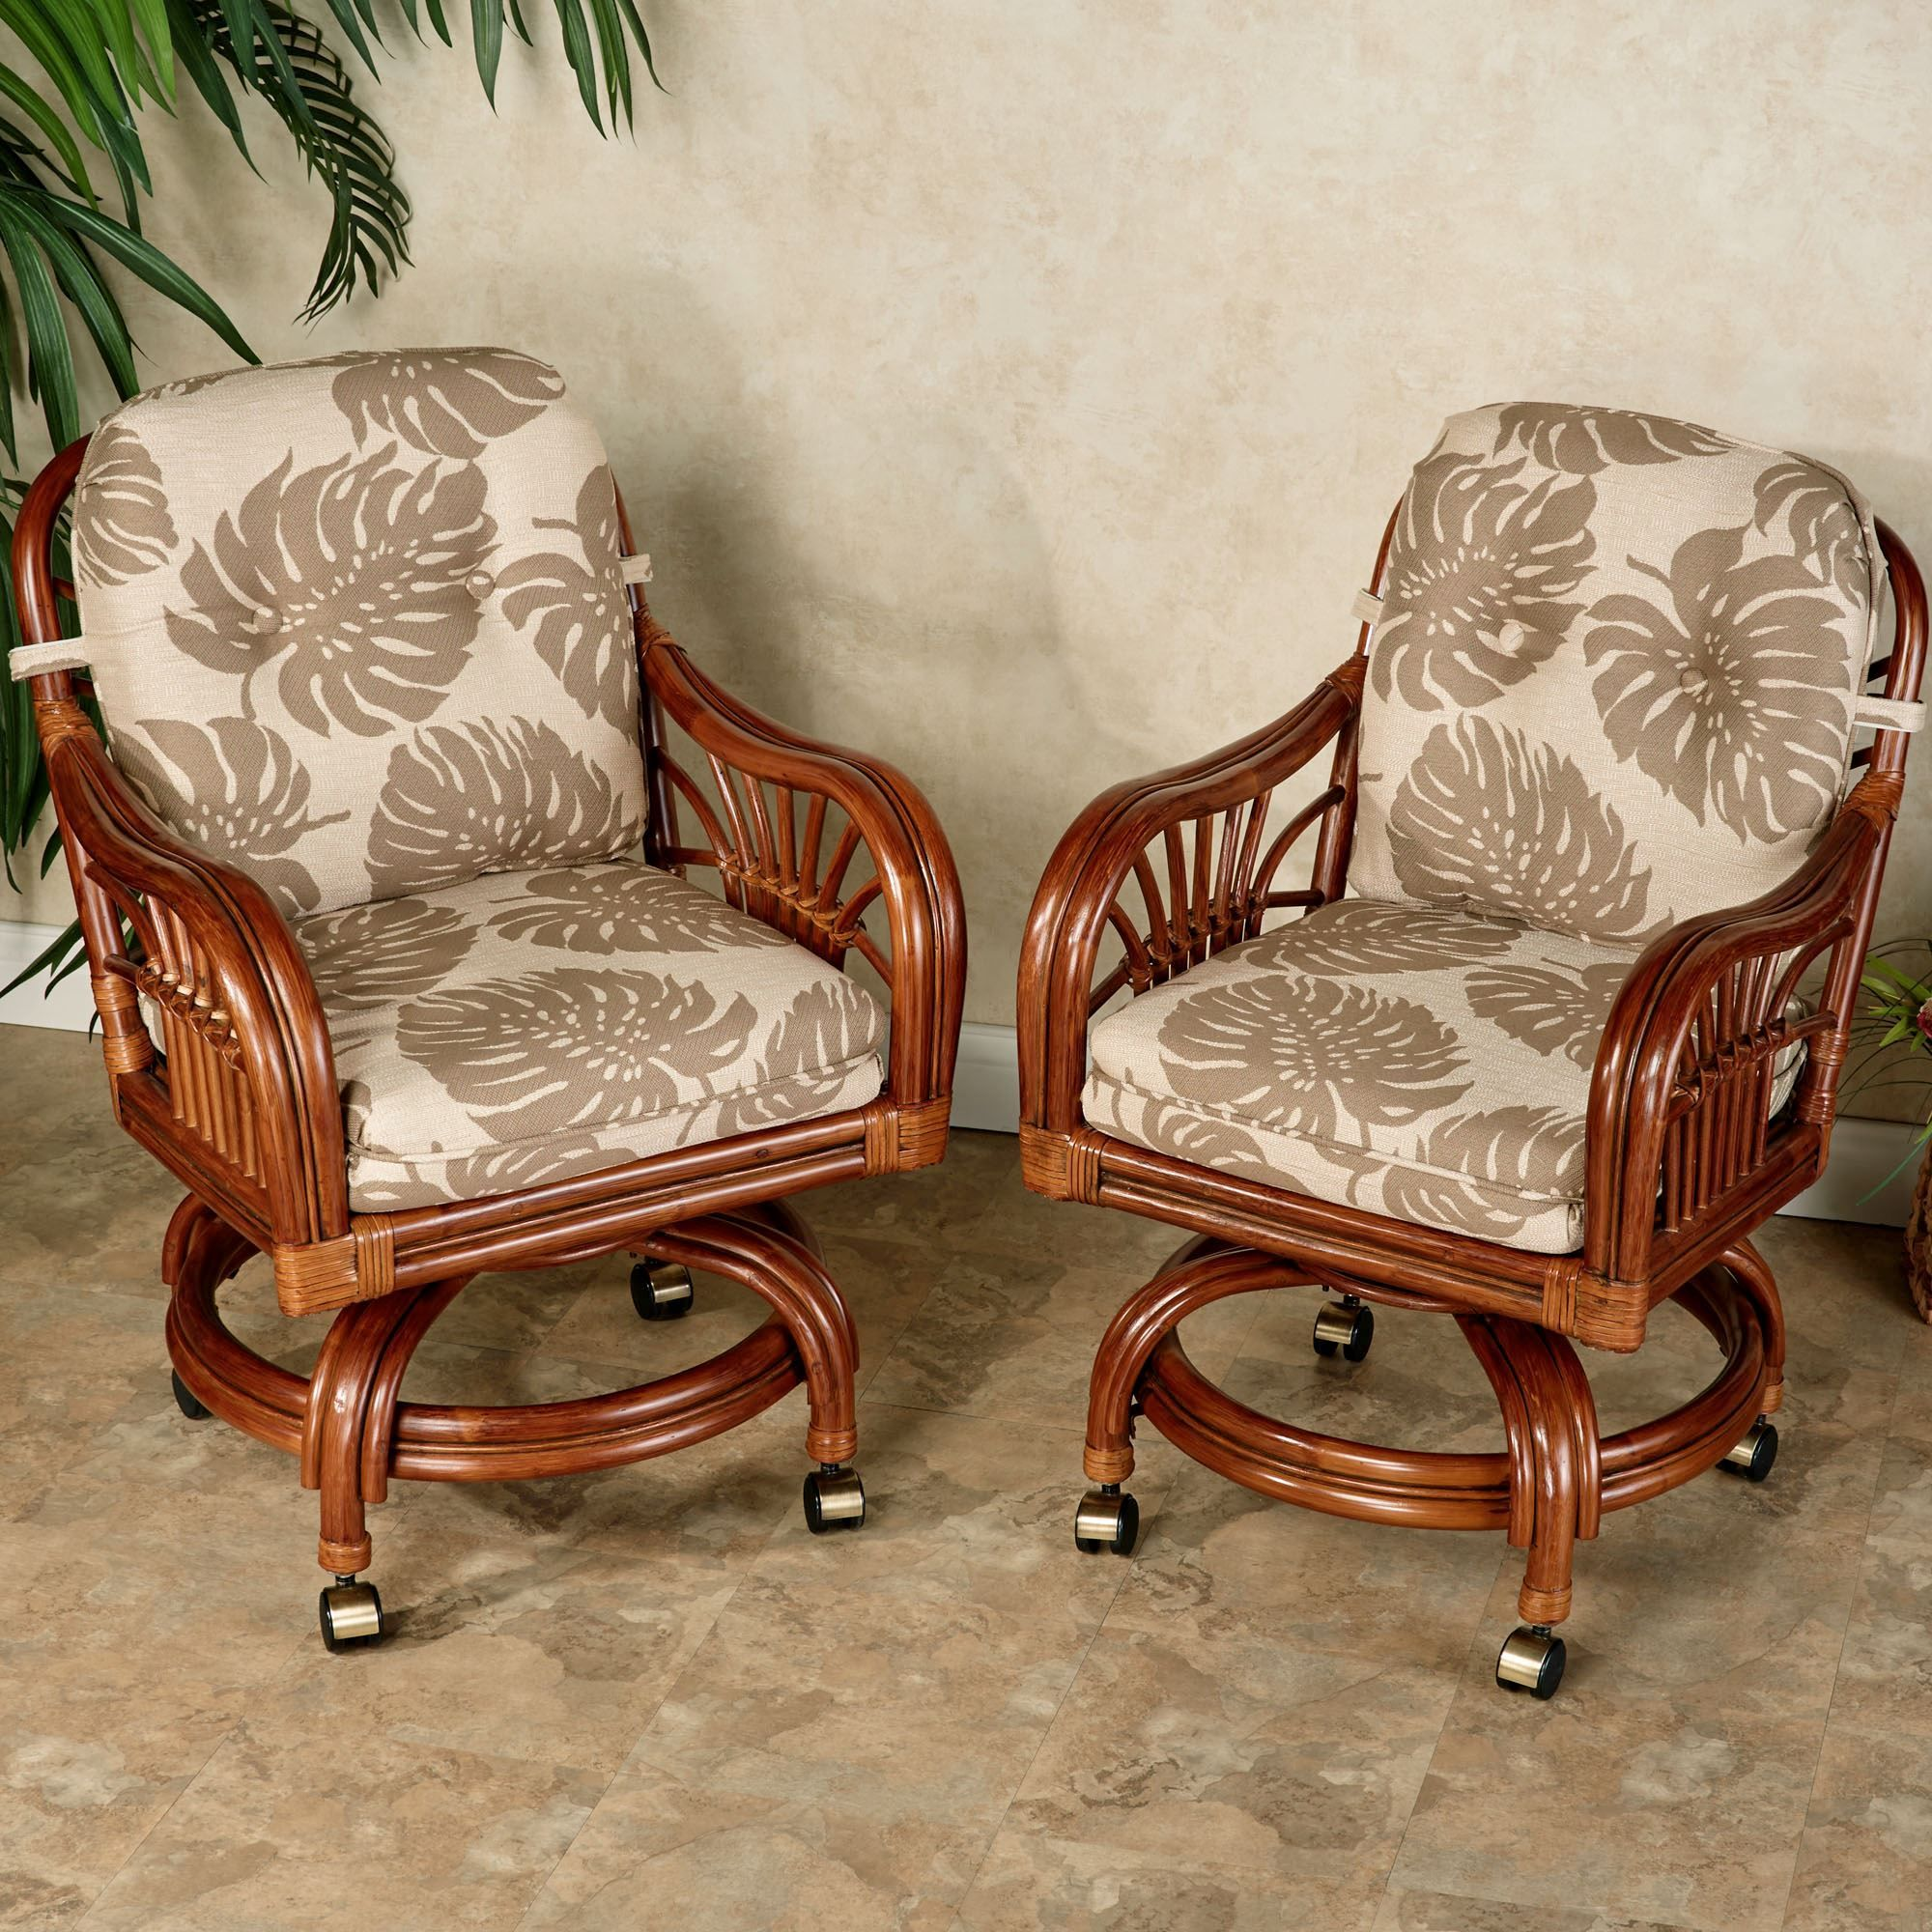 Leikela Rattan Tropical Dining Furniture Set Dining